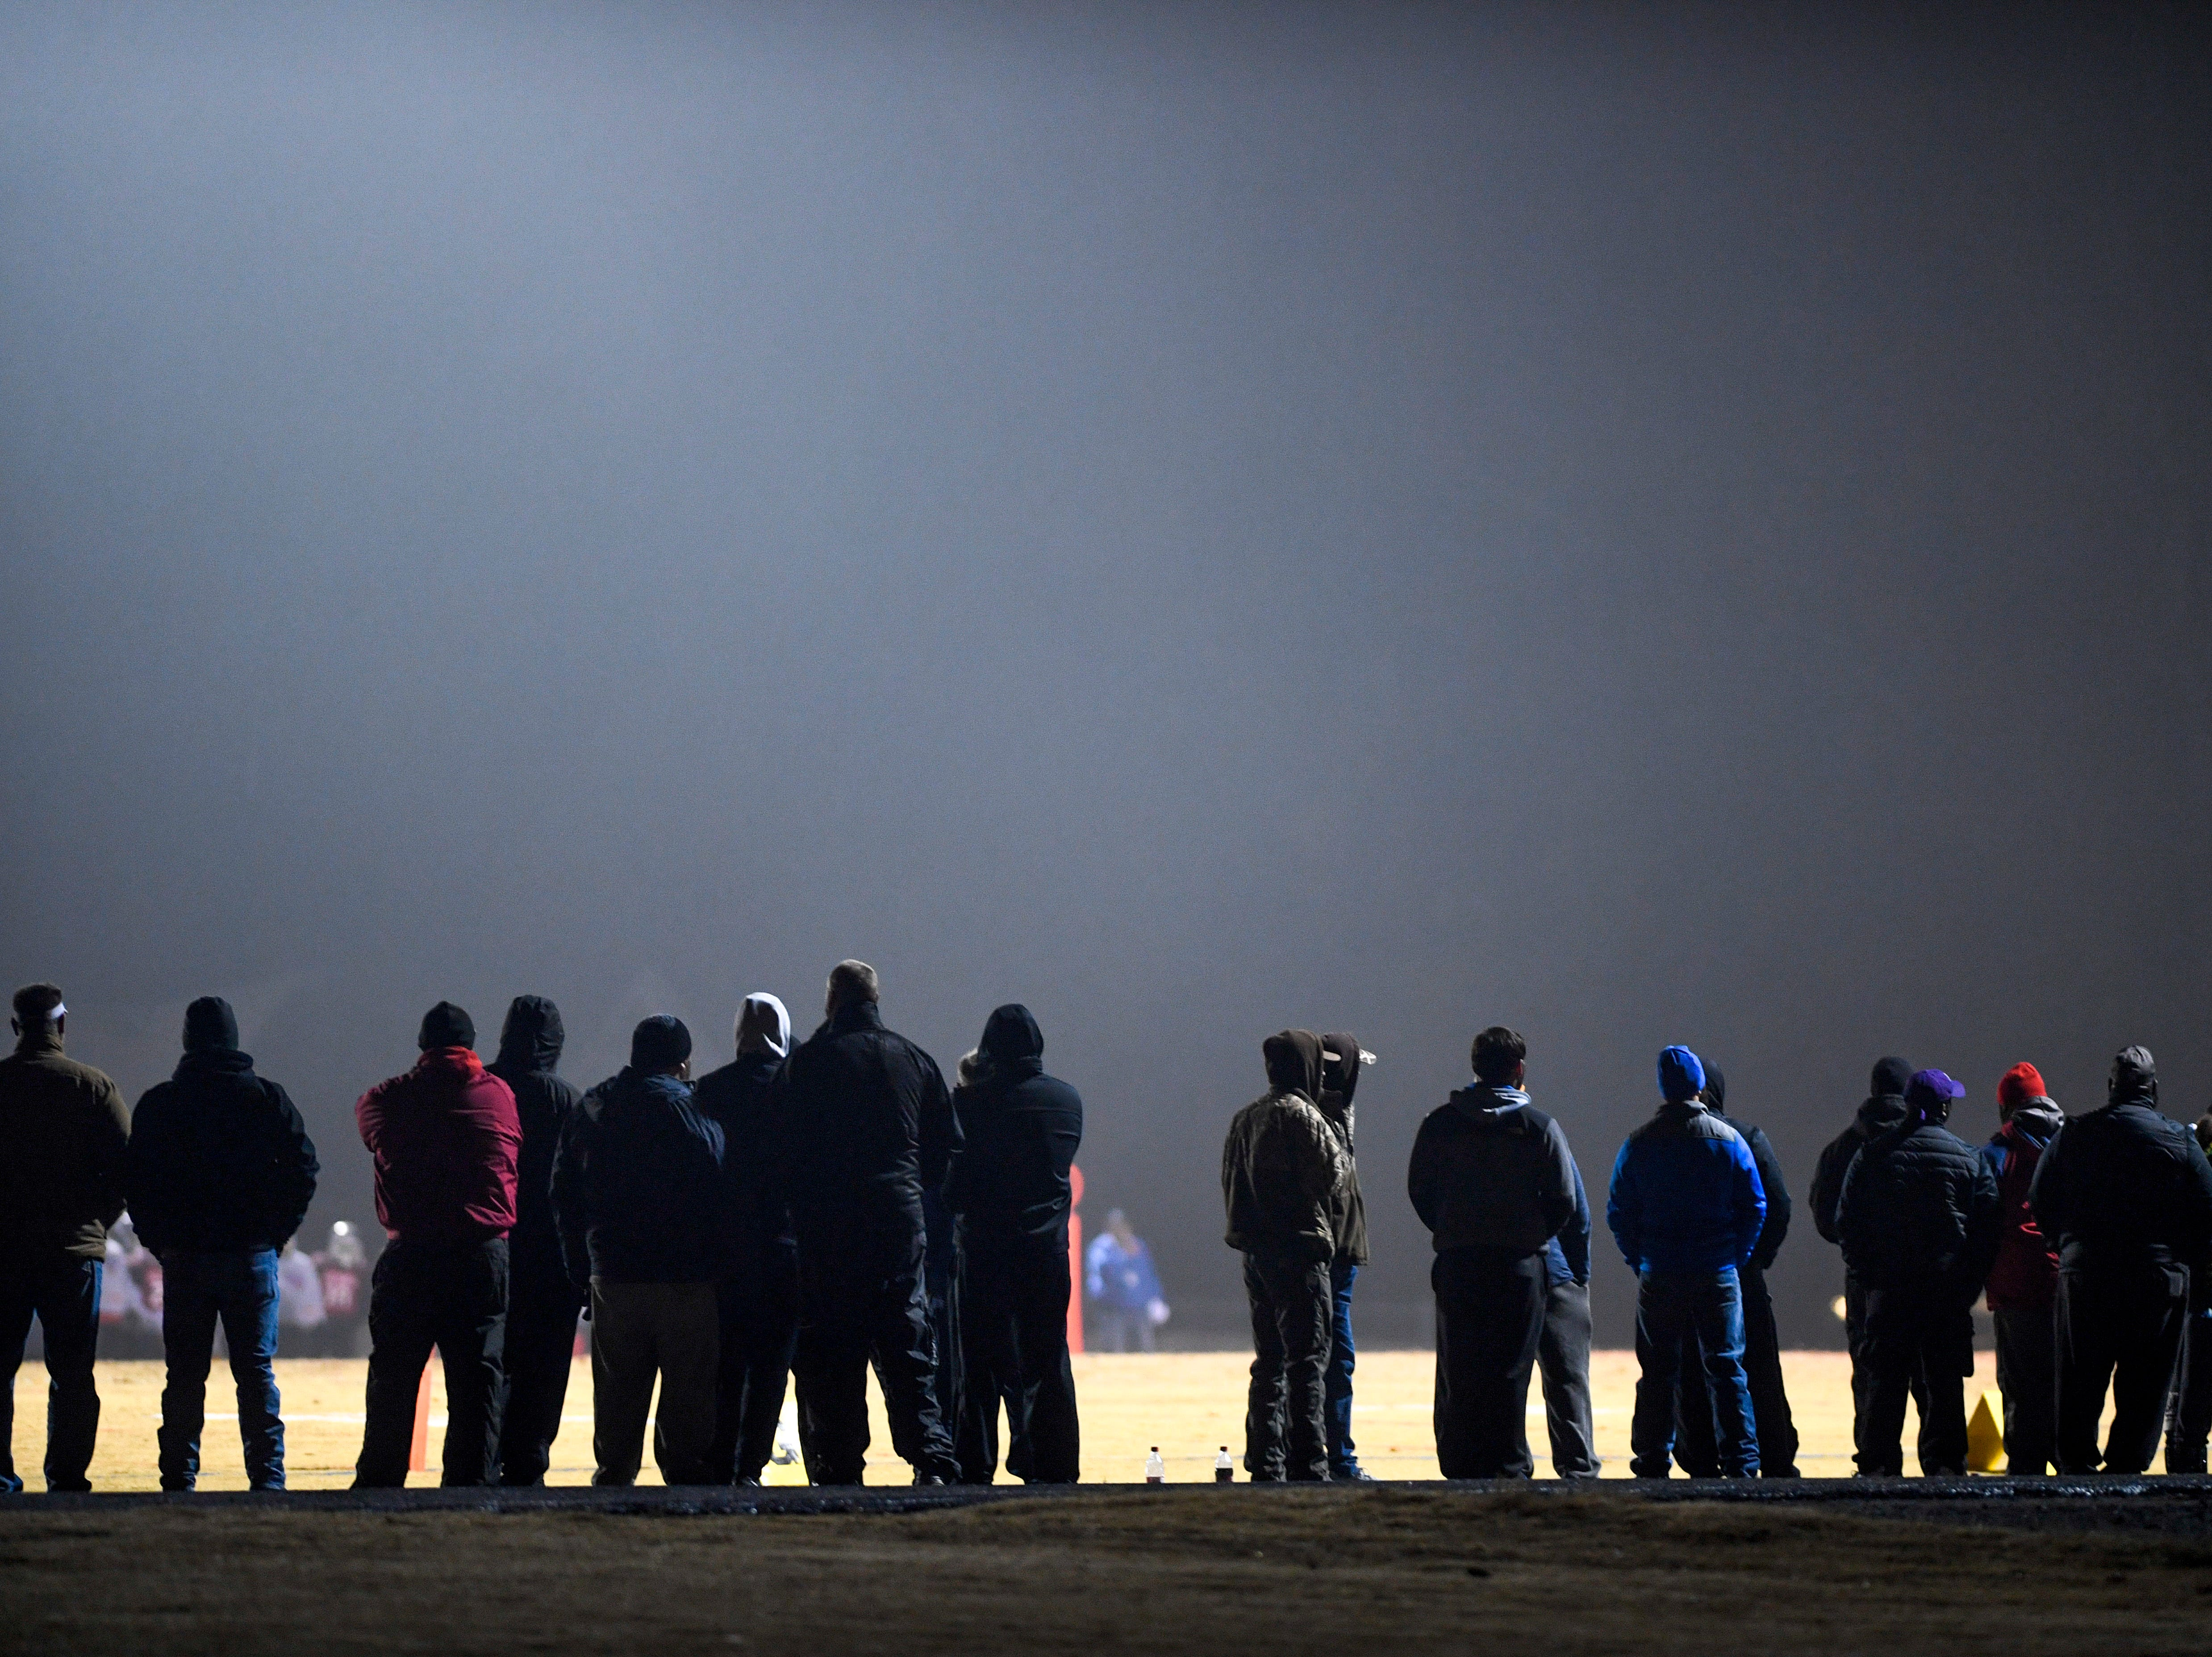 Fans watch from the sidelines during the West Tennessee All-Star football game at University School of Jackson in Jackson, Tenn., on Friday, Dec. 7, 2018.